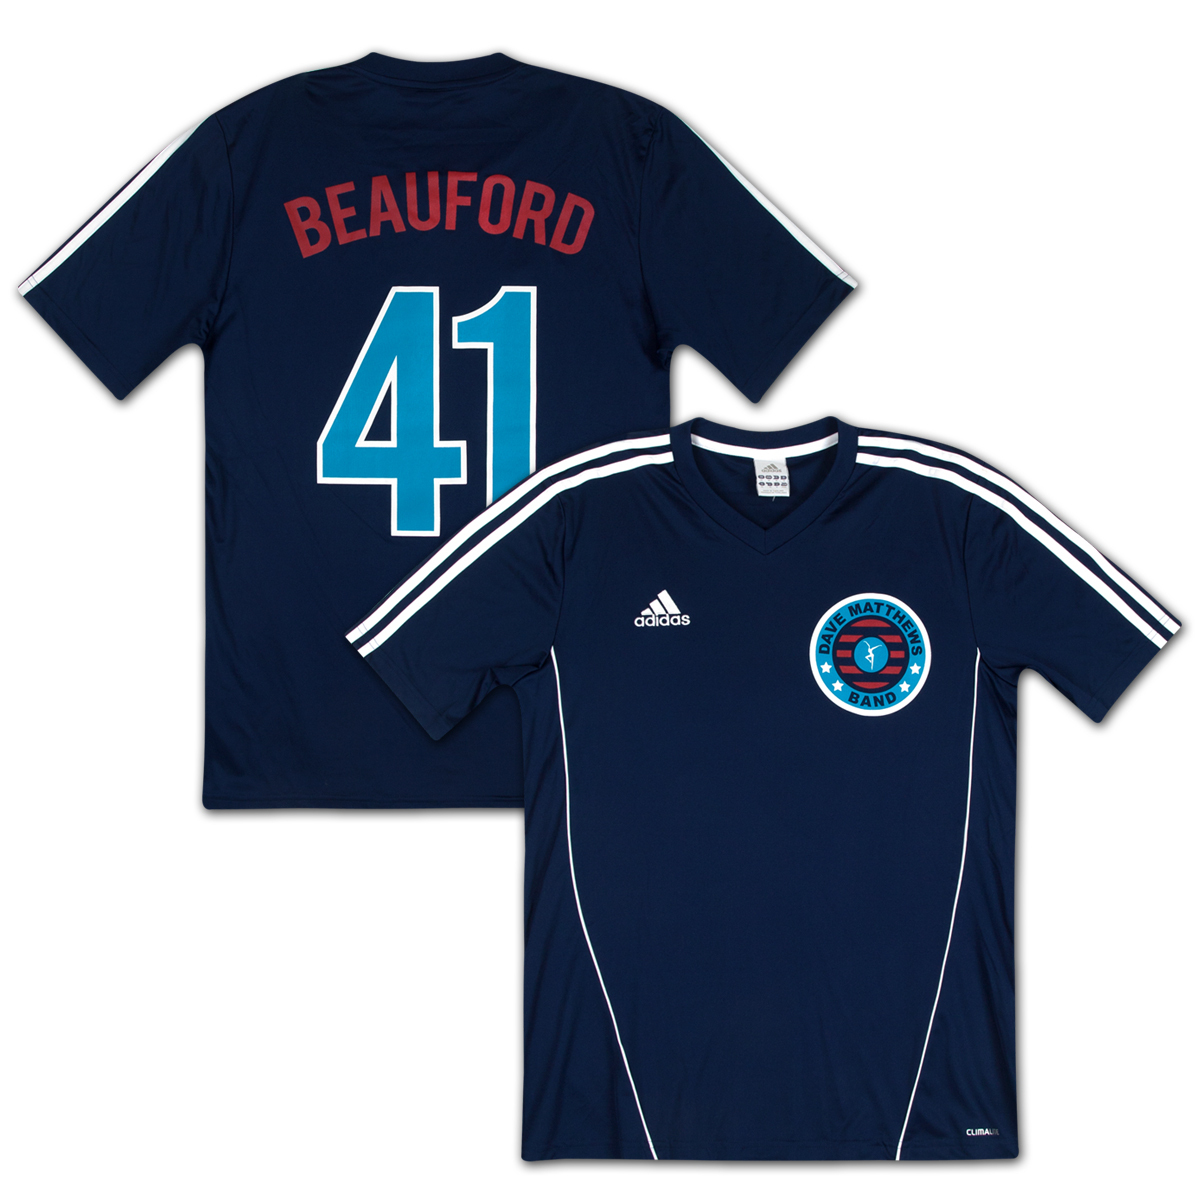 DMB 2013 Adidias Beauford Soccer Jersey